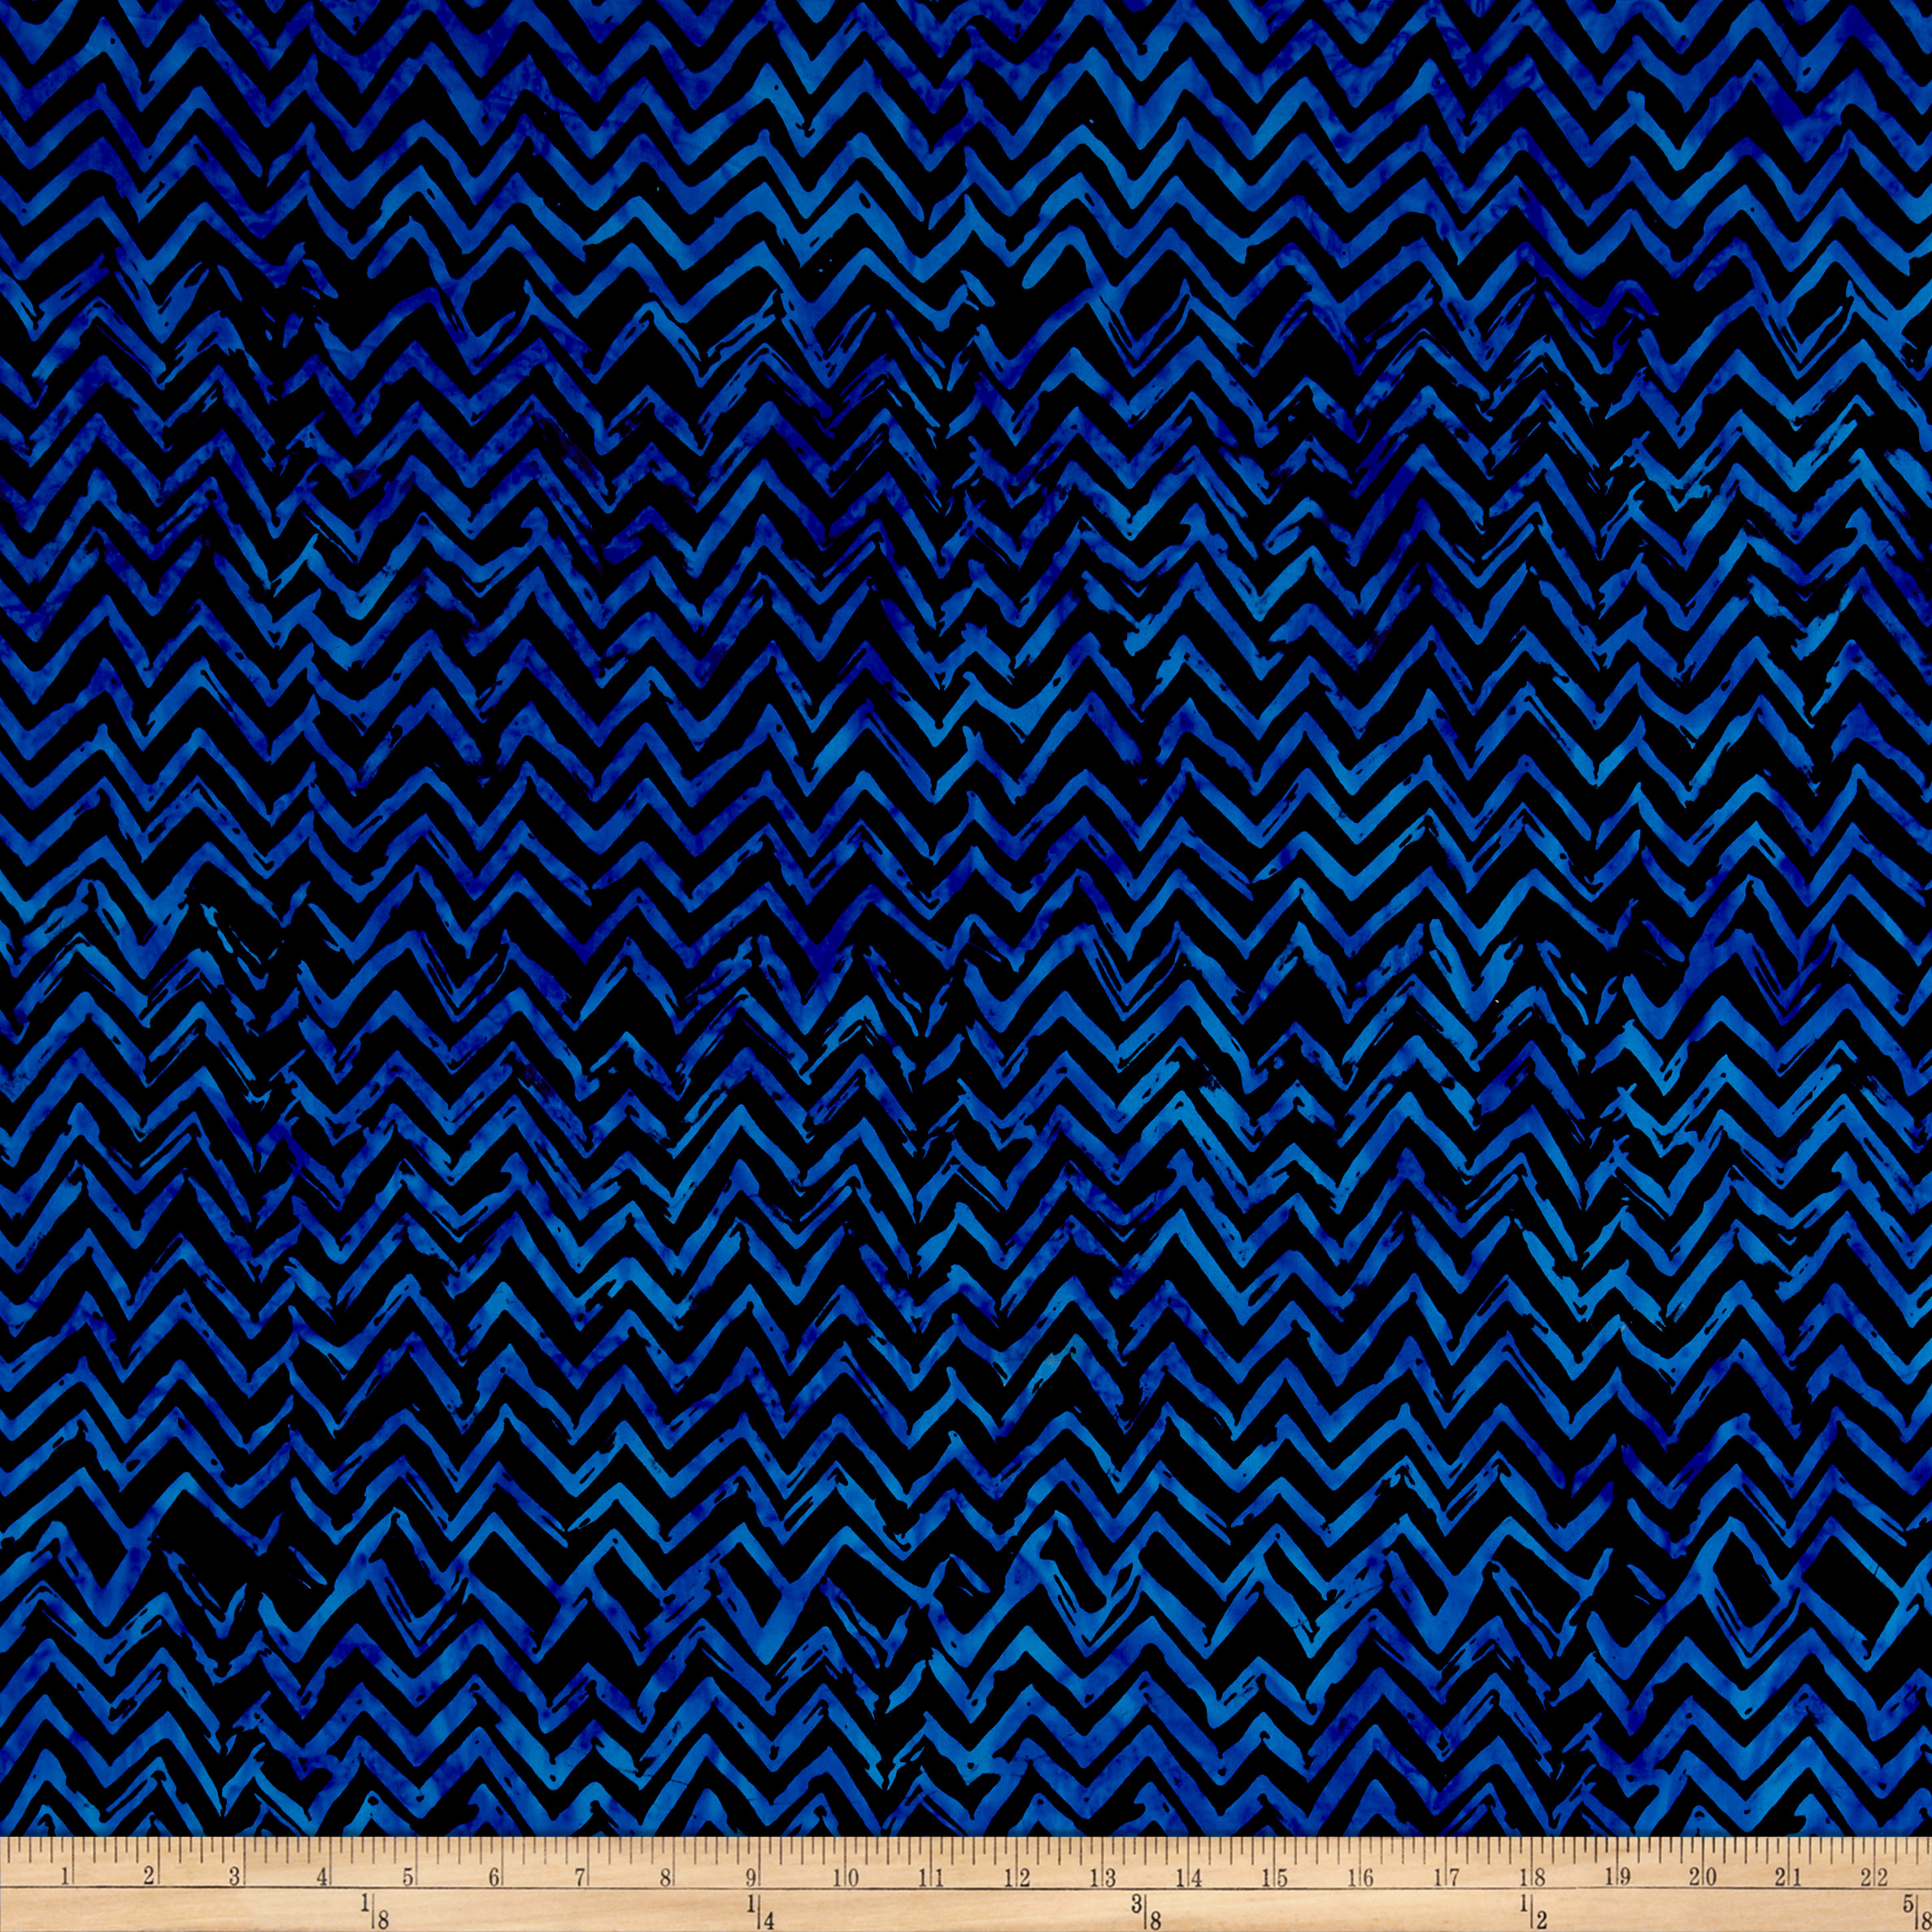 Anthology Batiks Chevron Blue Fabric